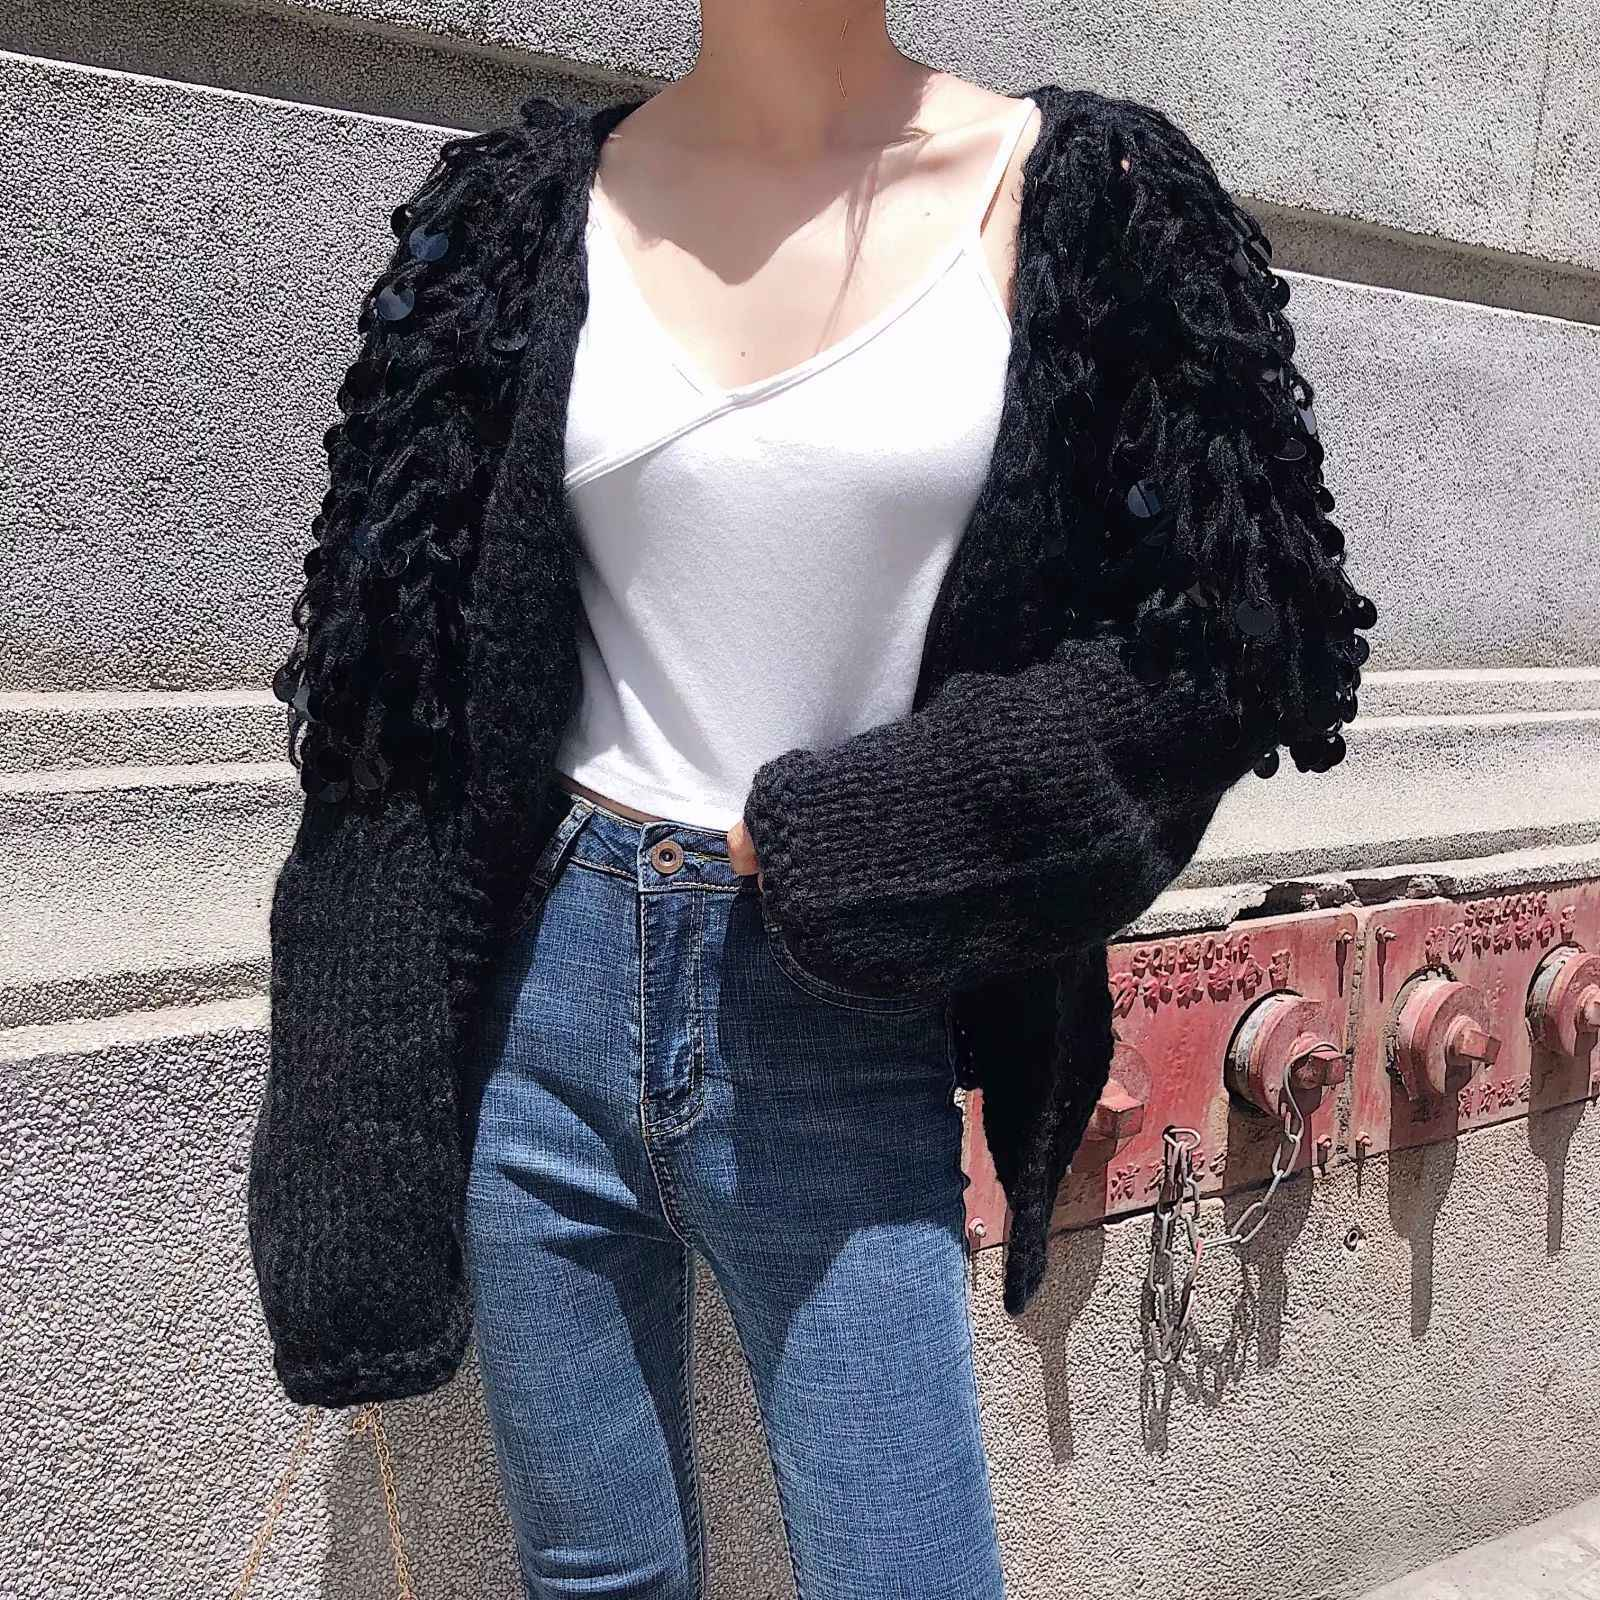 dfaa5e85bca6 ... Hand Knitted Beading Cardigan Women Fringed Sweater Loose 3D Sequined  Tassels Coat Hollow Wool Circles Fringed ...